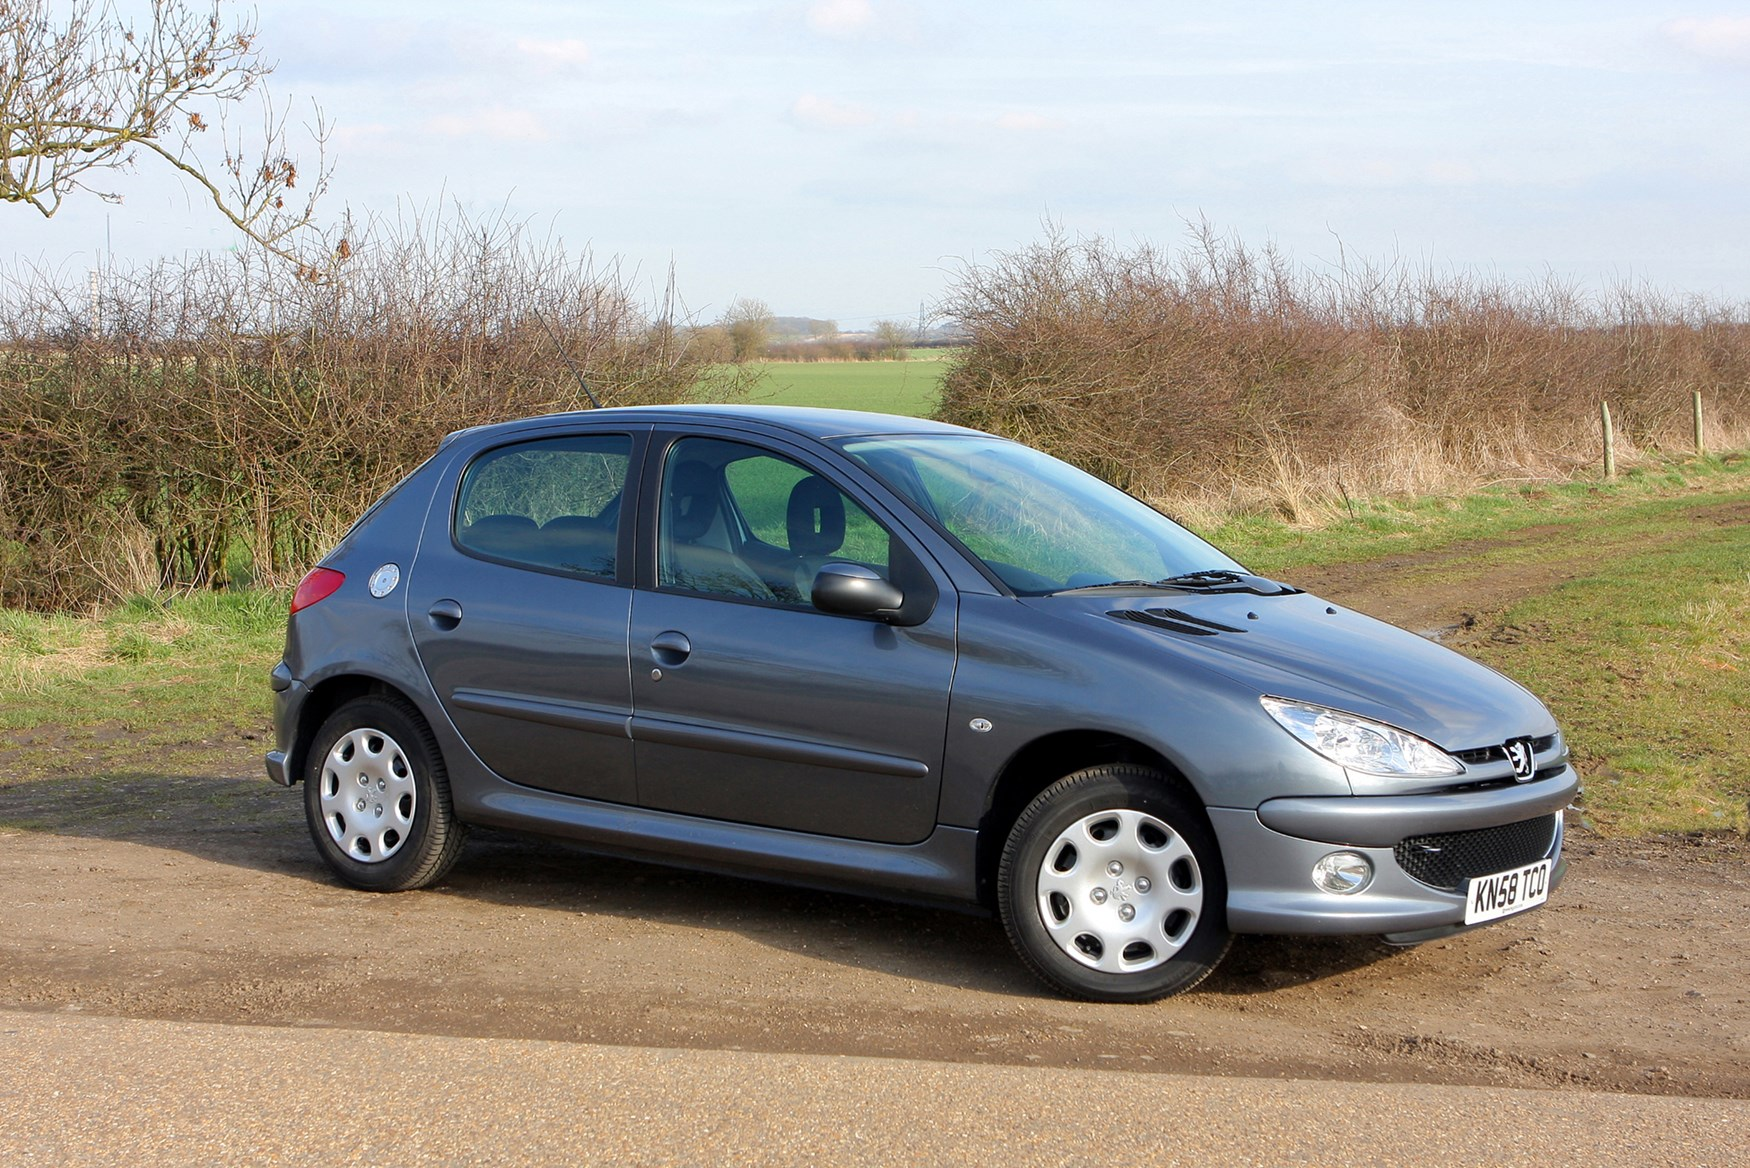 peugeot 206 hatchback 1998 2009 features equipment and accessories parkers. Black Bedroom Furniture Sets. Home Design Ideas